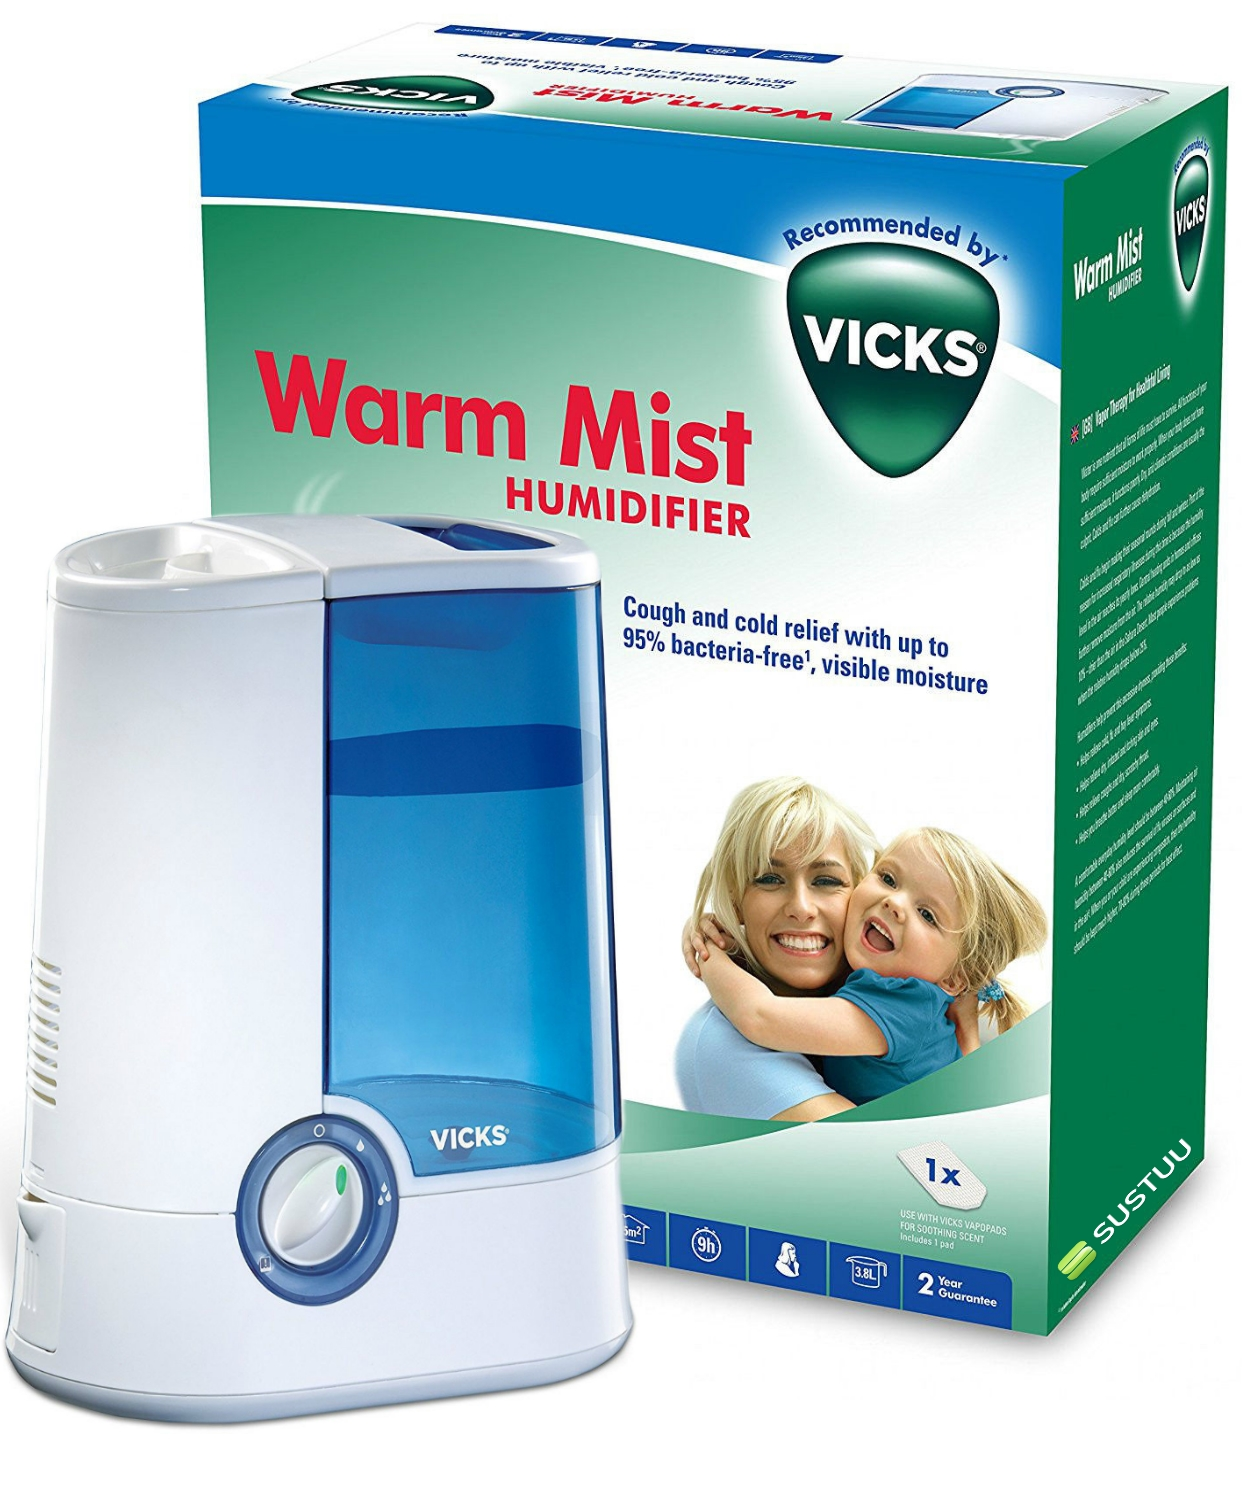 Vicks Vh750 3 8l Warm Mist Humidifier For Cough Amp Cold